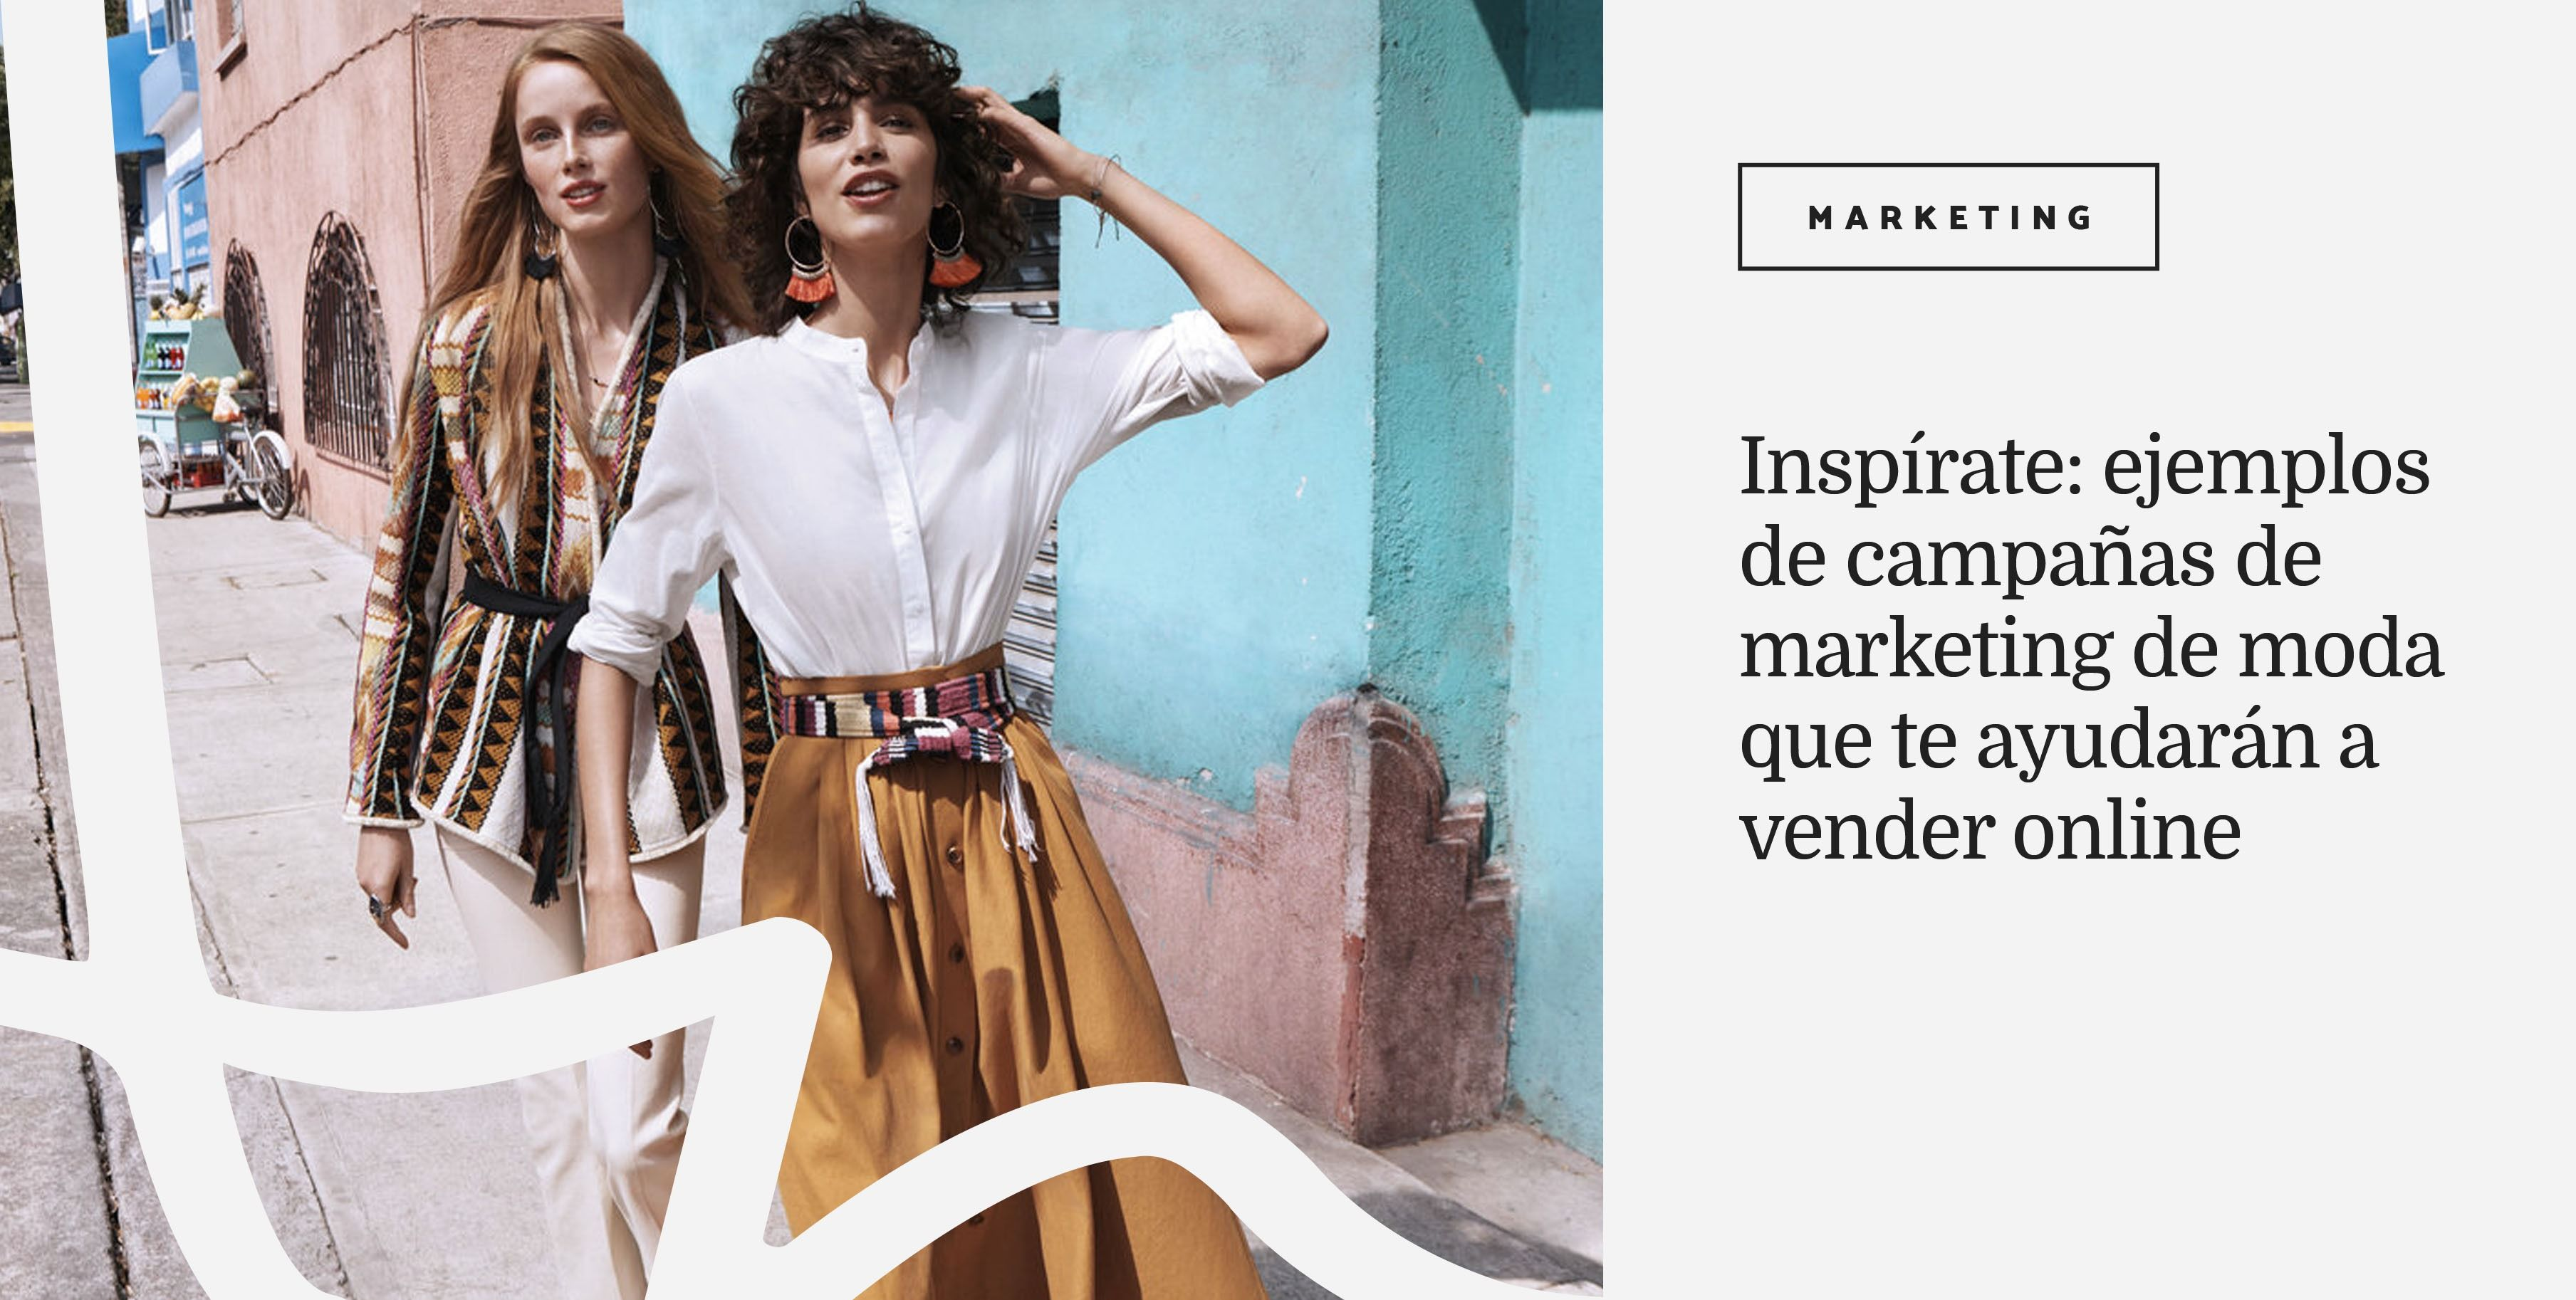 Ejemplos-Marketing-Online-Moda-Ana-Diaz-del-Rio-portada-02.jpg